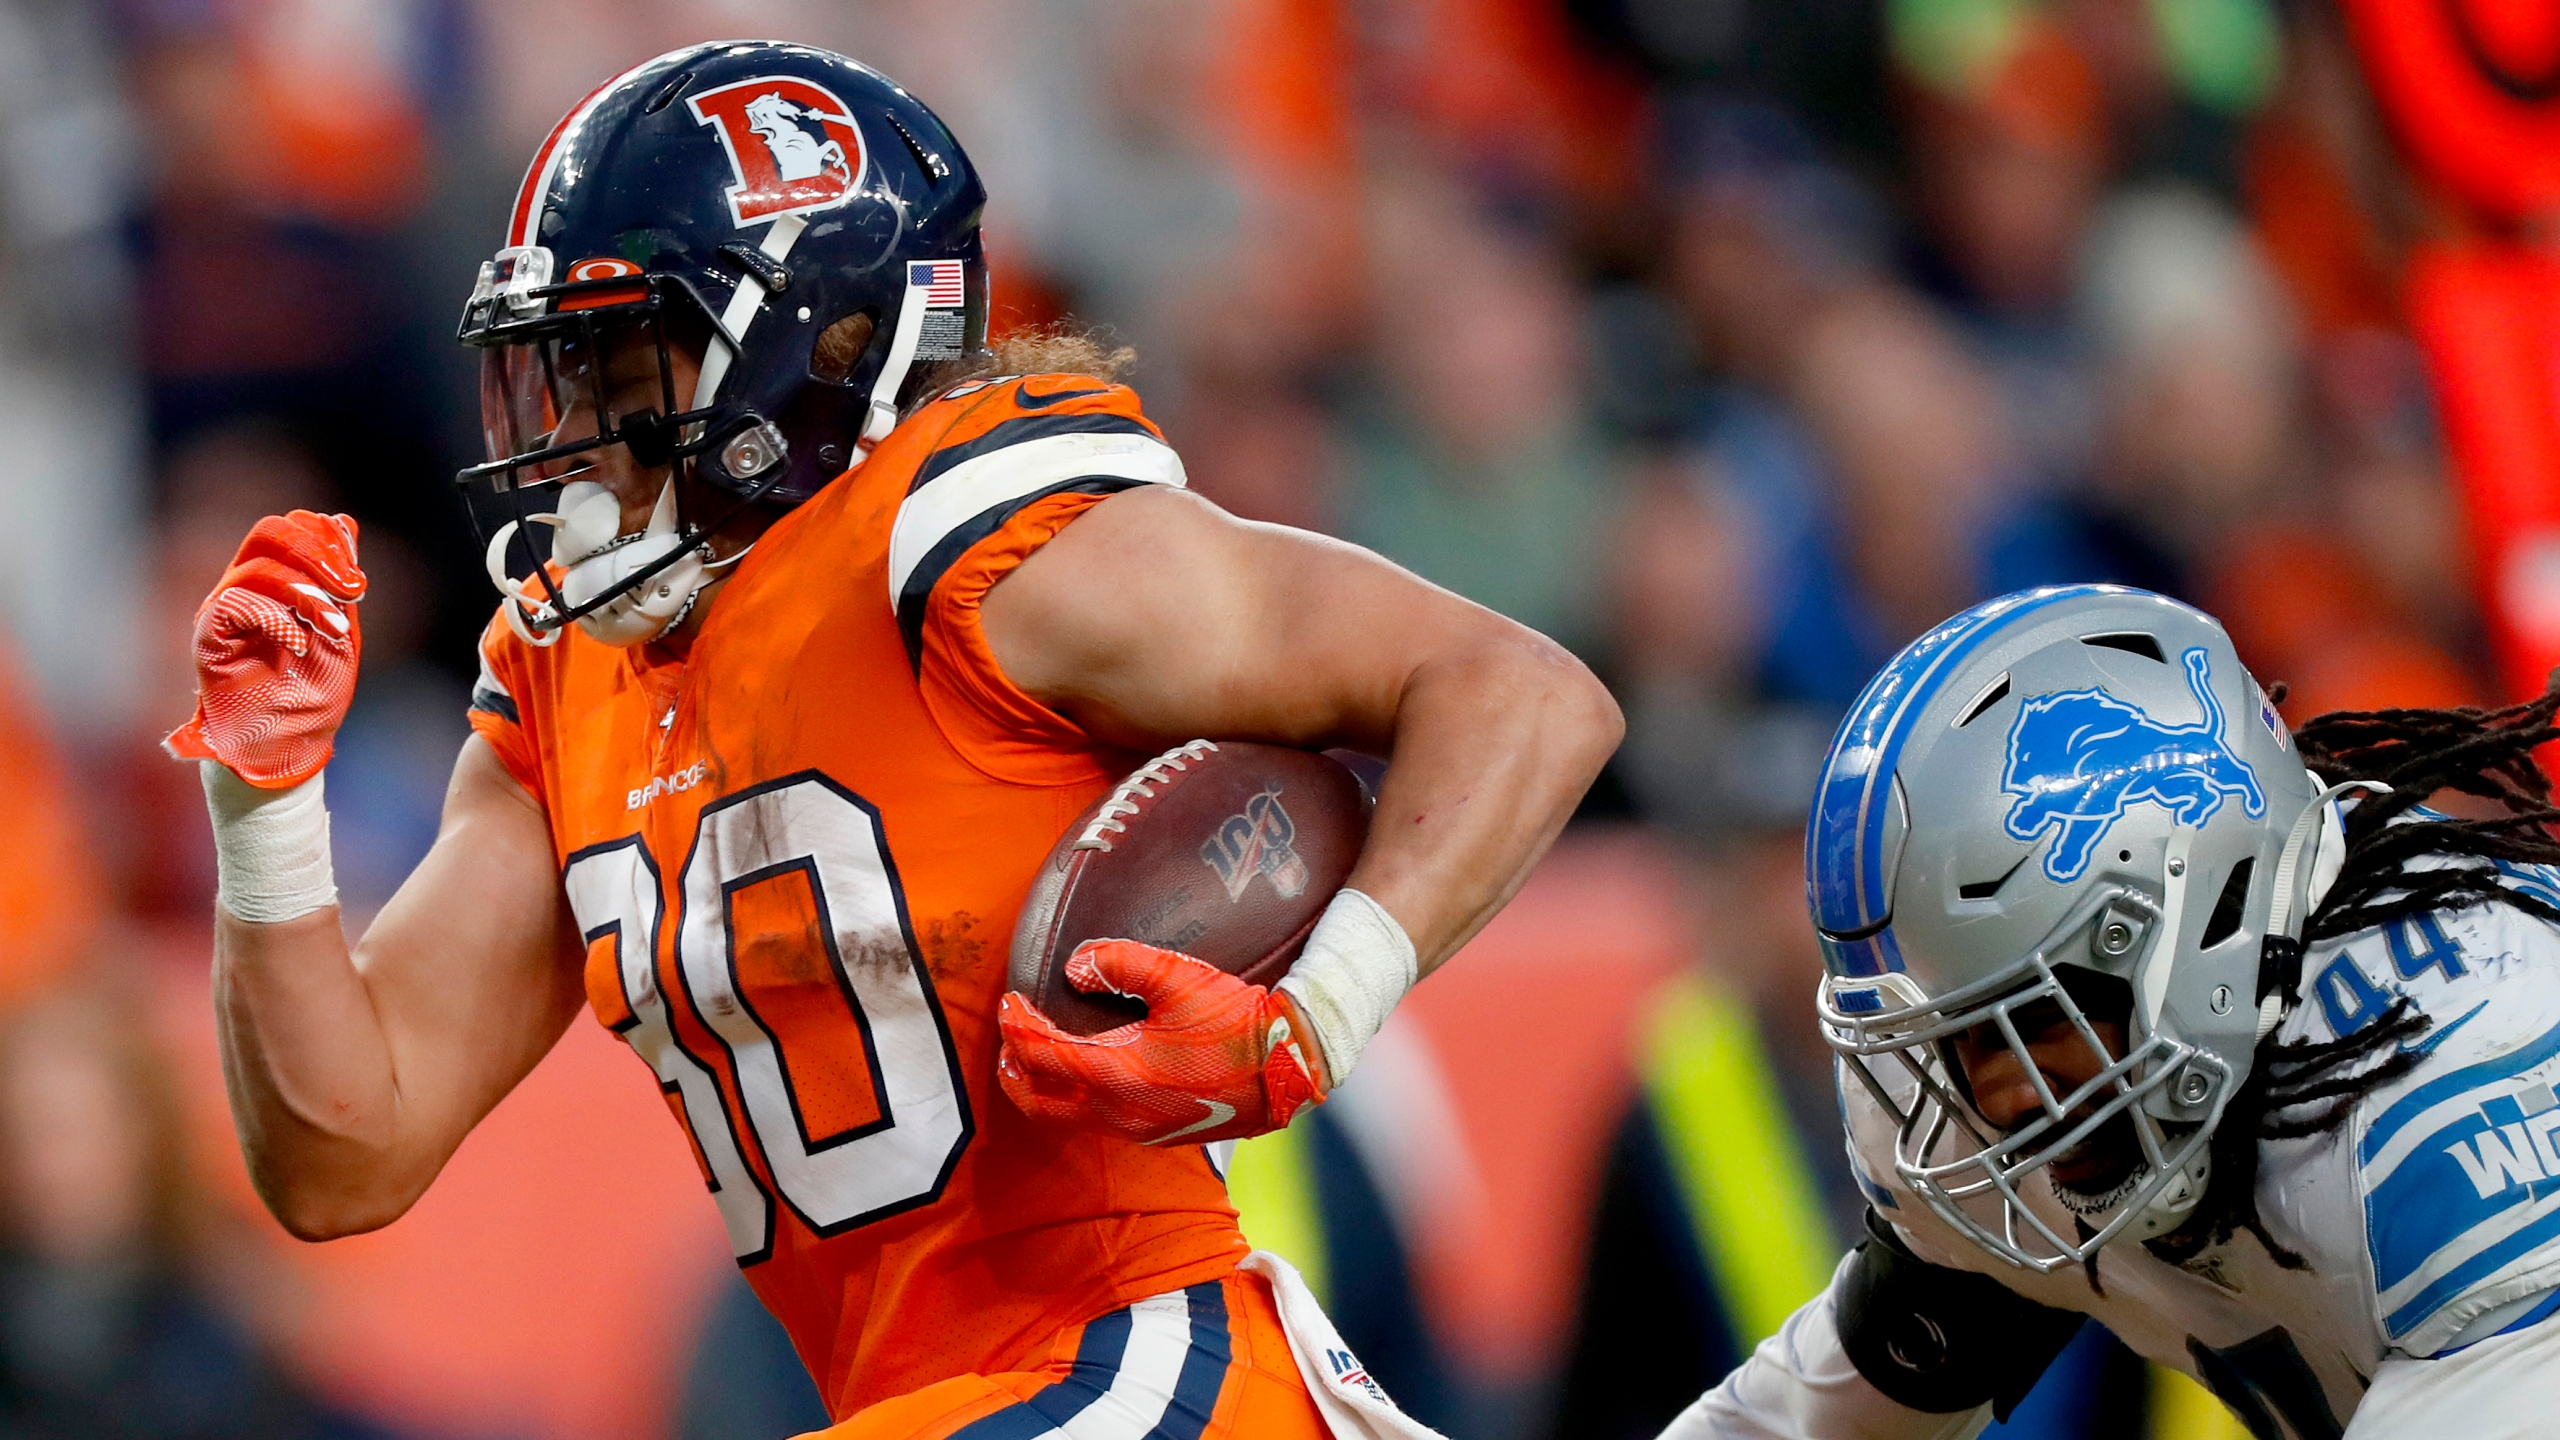 Denver Broncos running back Phillip Lindsay (30) breaks free from the grasp of Detroit Lions linebacker Jalen Reeves-Maybin (44) for a touchdown during the second half of an NFL football game, Sunday, Dec. 22, 2019, in Denver. (AP Photo/David Zalubowski)